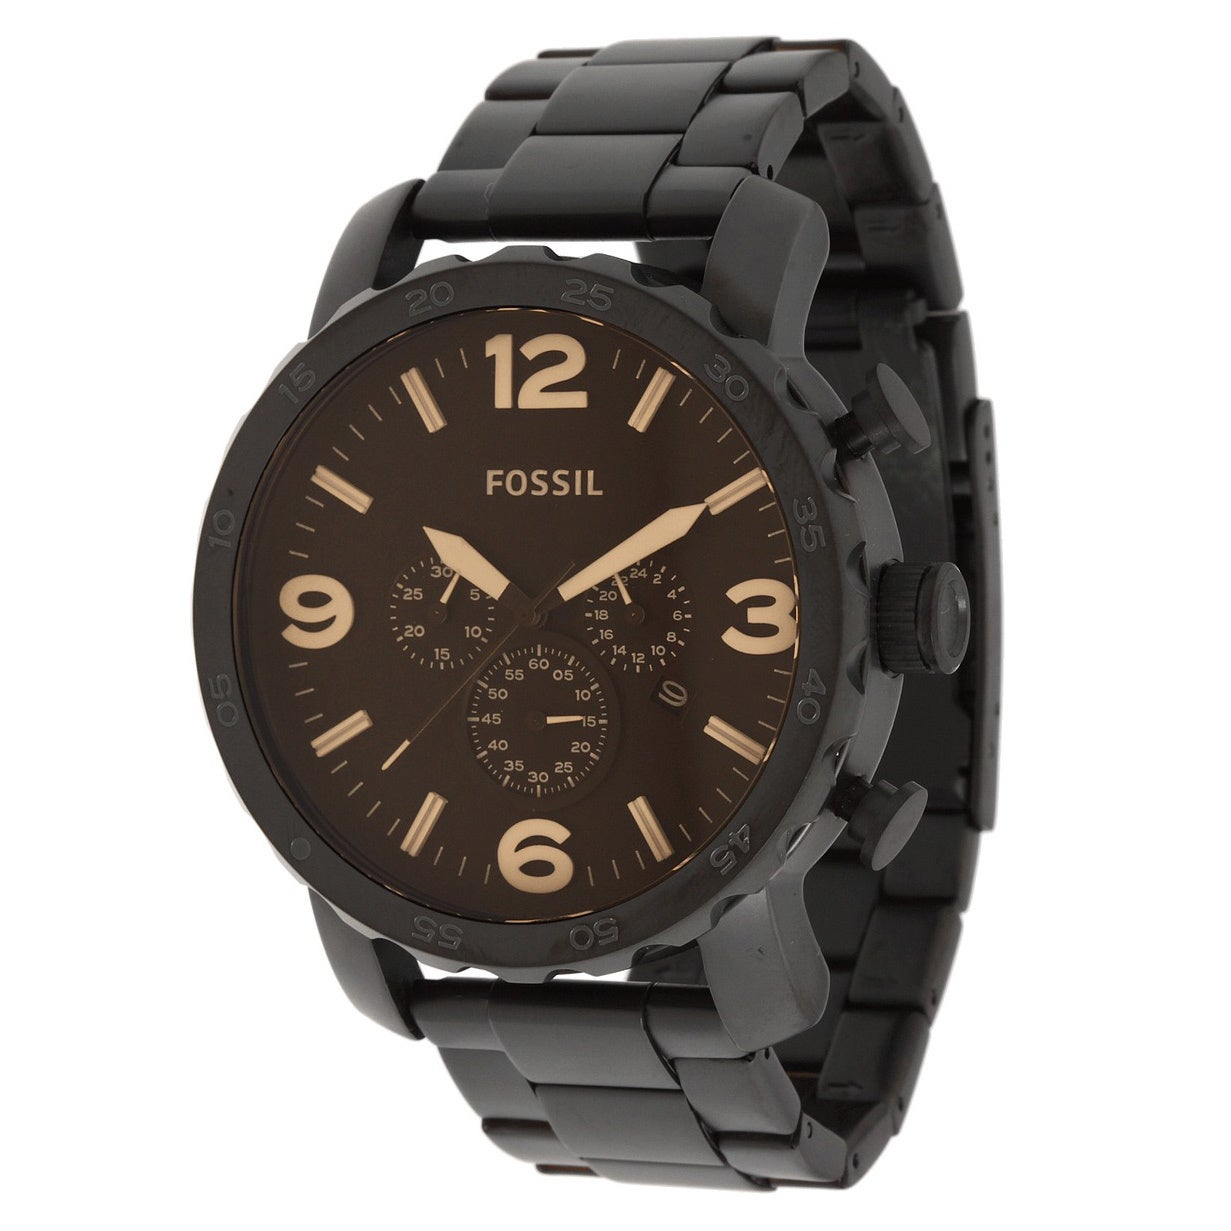 Fossil Men's JR1356 Nate Chronograph Stainless Steel Watc...